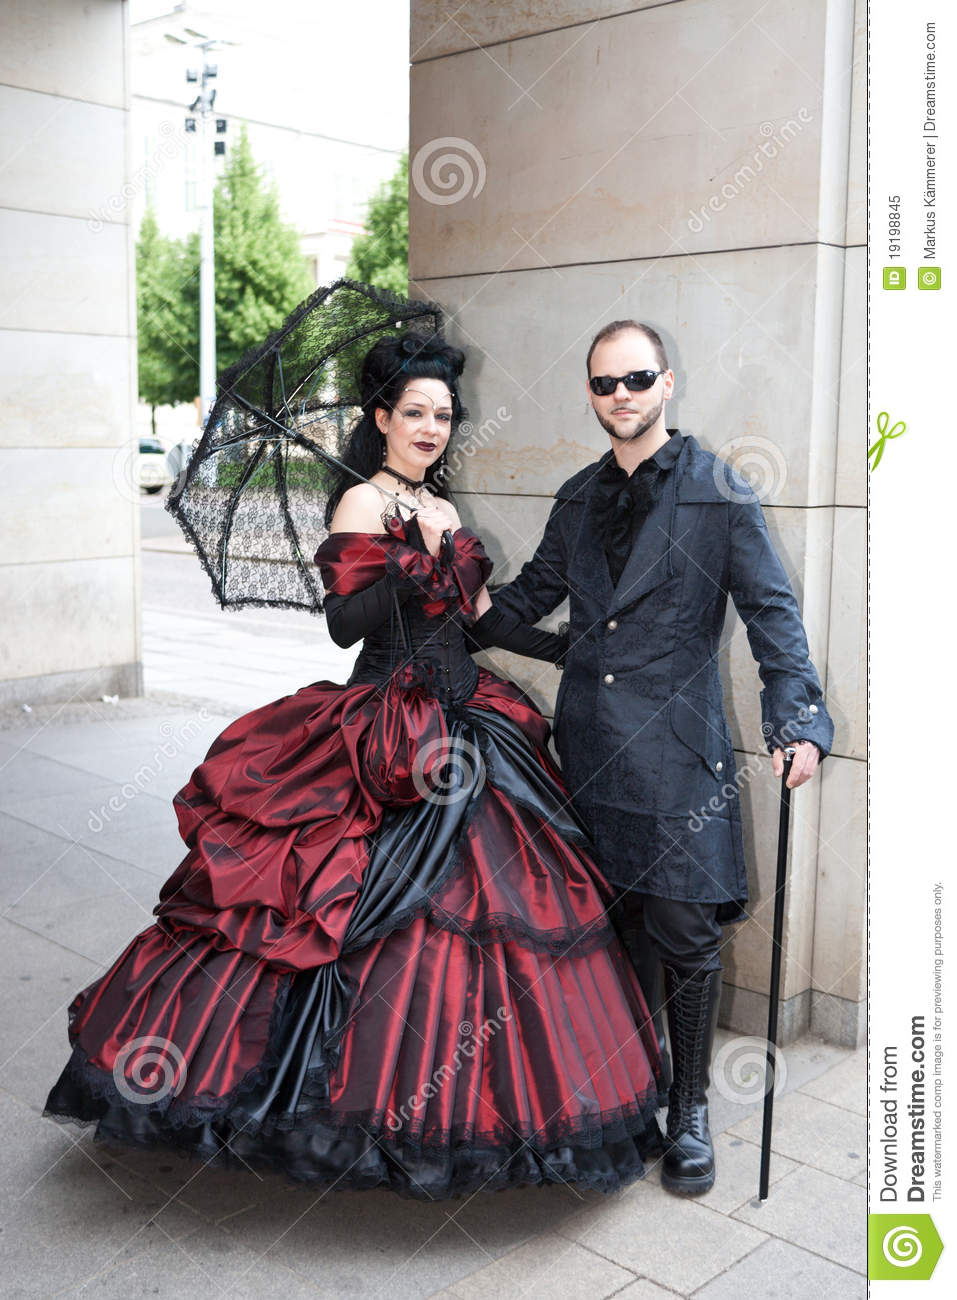 Beautiful Emo Girl Wallpaper Traditional Couple At Wave Gotik Treffen Editorial Image